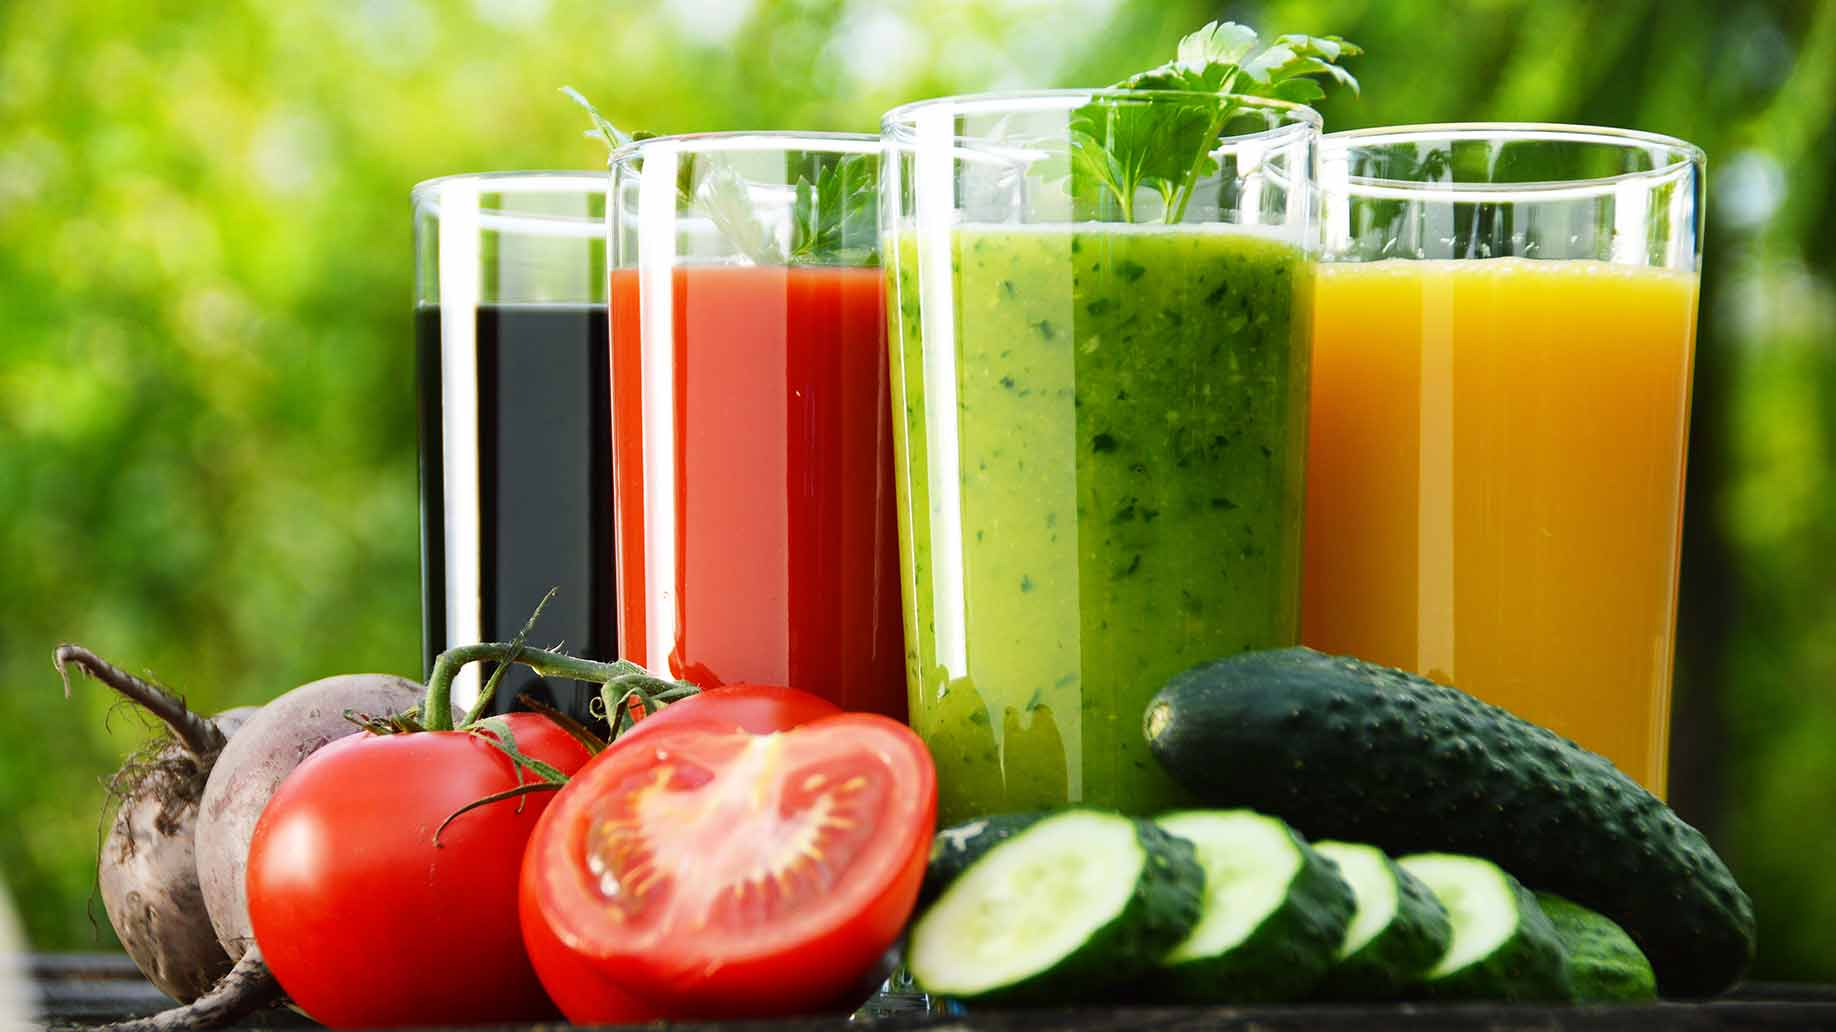 The Ideal Kidney Cleanse For Chronic Kidney Disease Patients